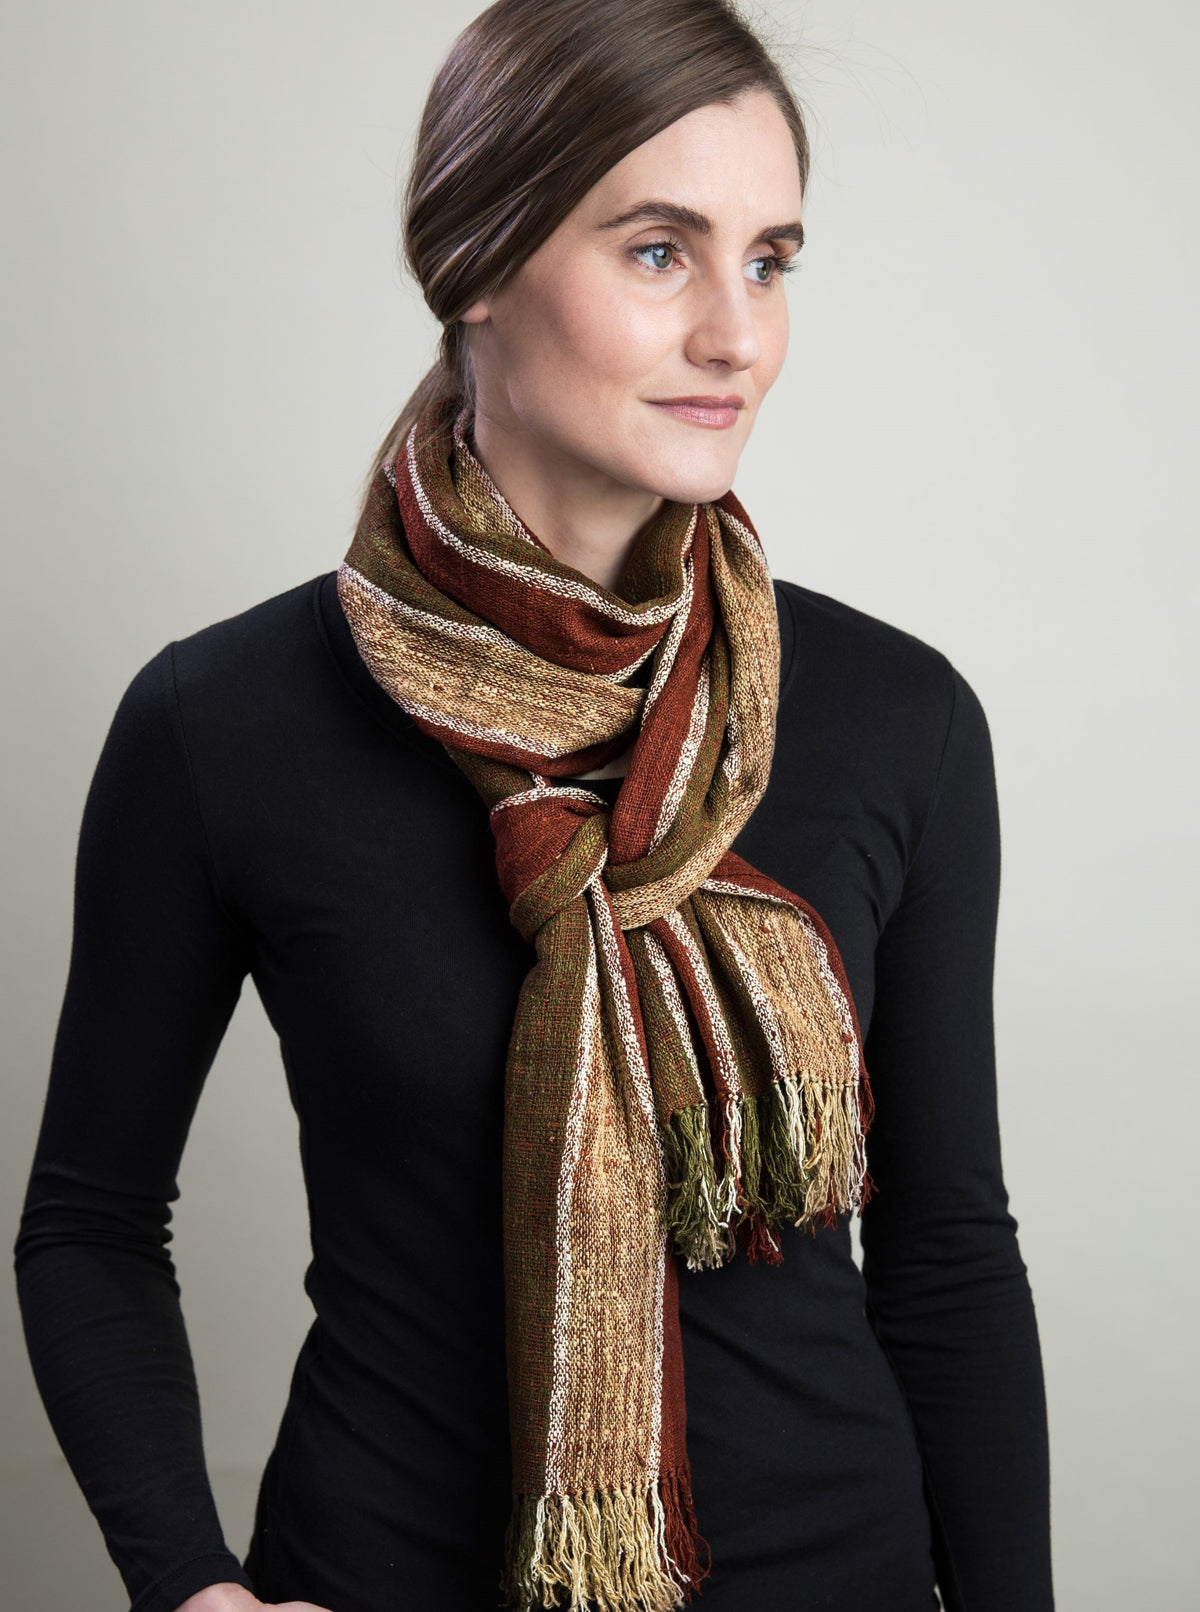 Naturally Dyed Hand-Made Fair Trade Scarf for Women and Men